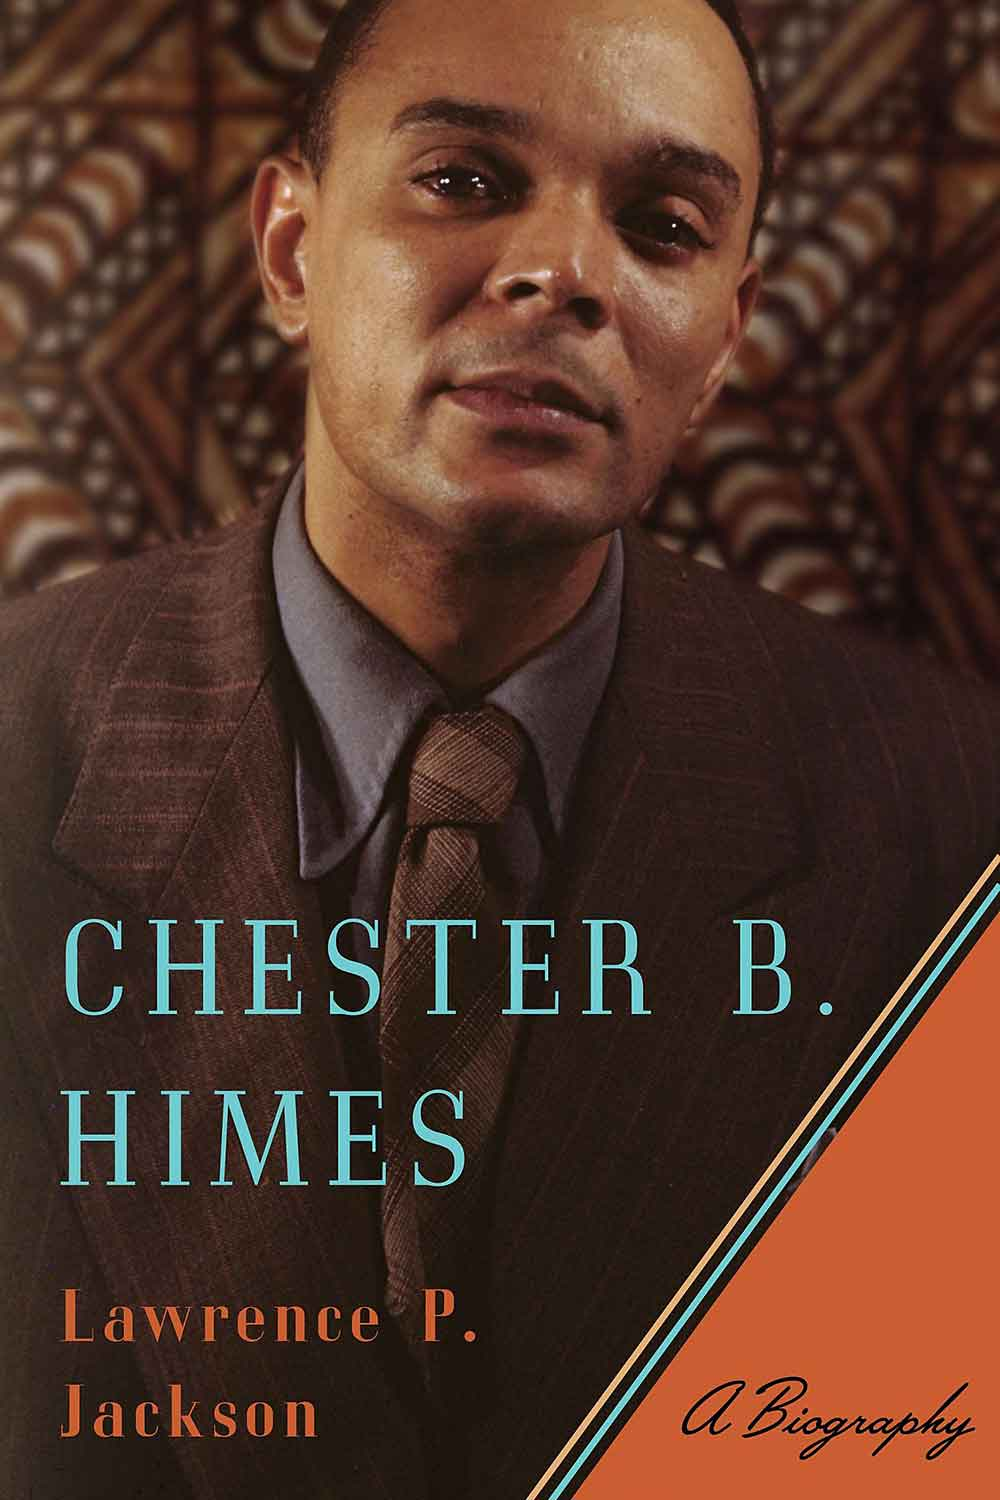 05-Chester-B-Himes